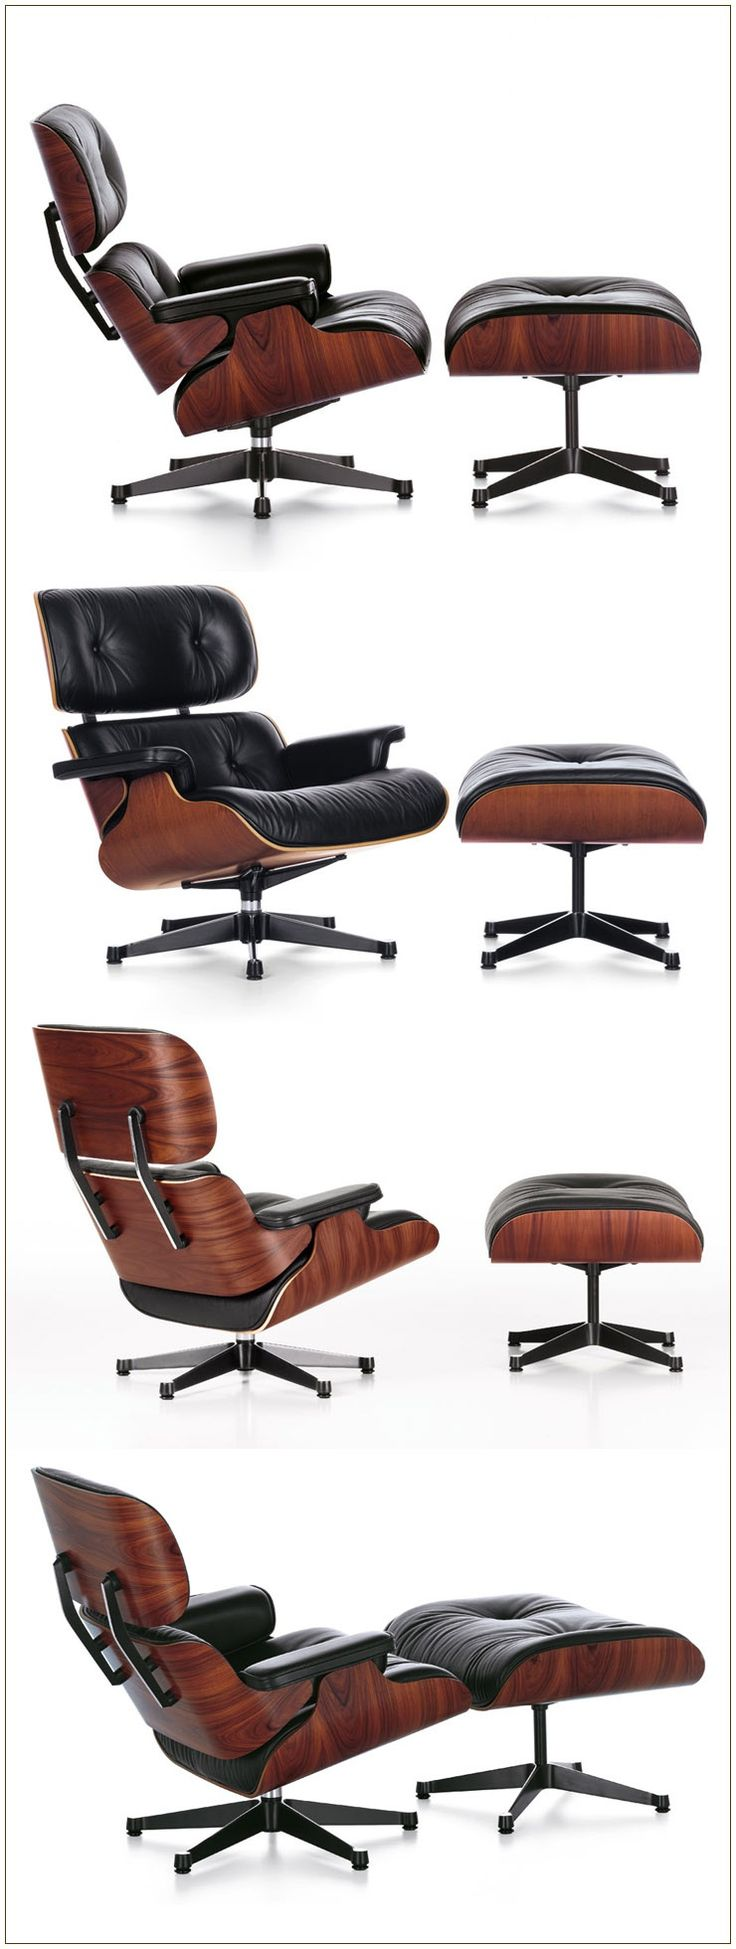 Charles-Eames-Lounge-Chair                                                                                                                                                                                 More